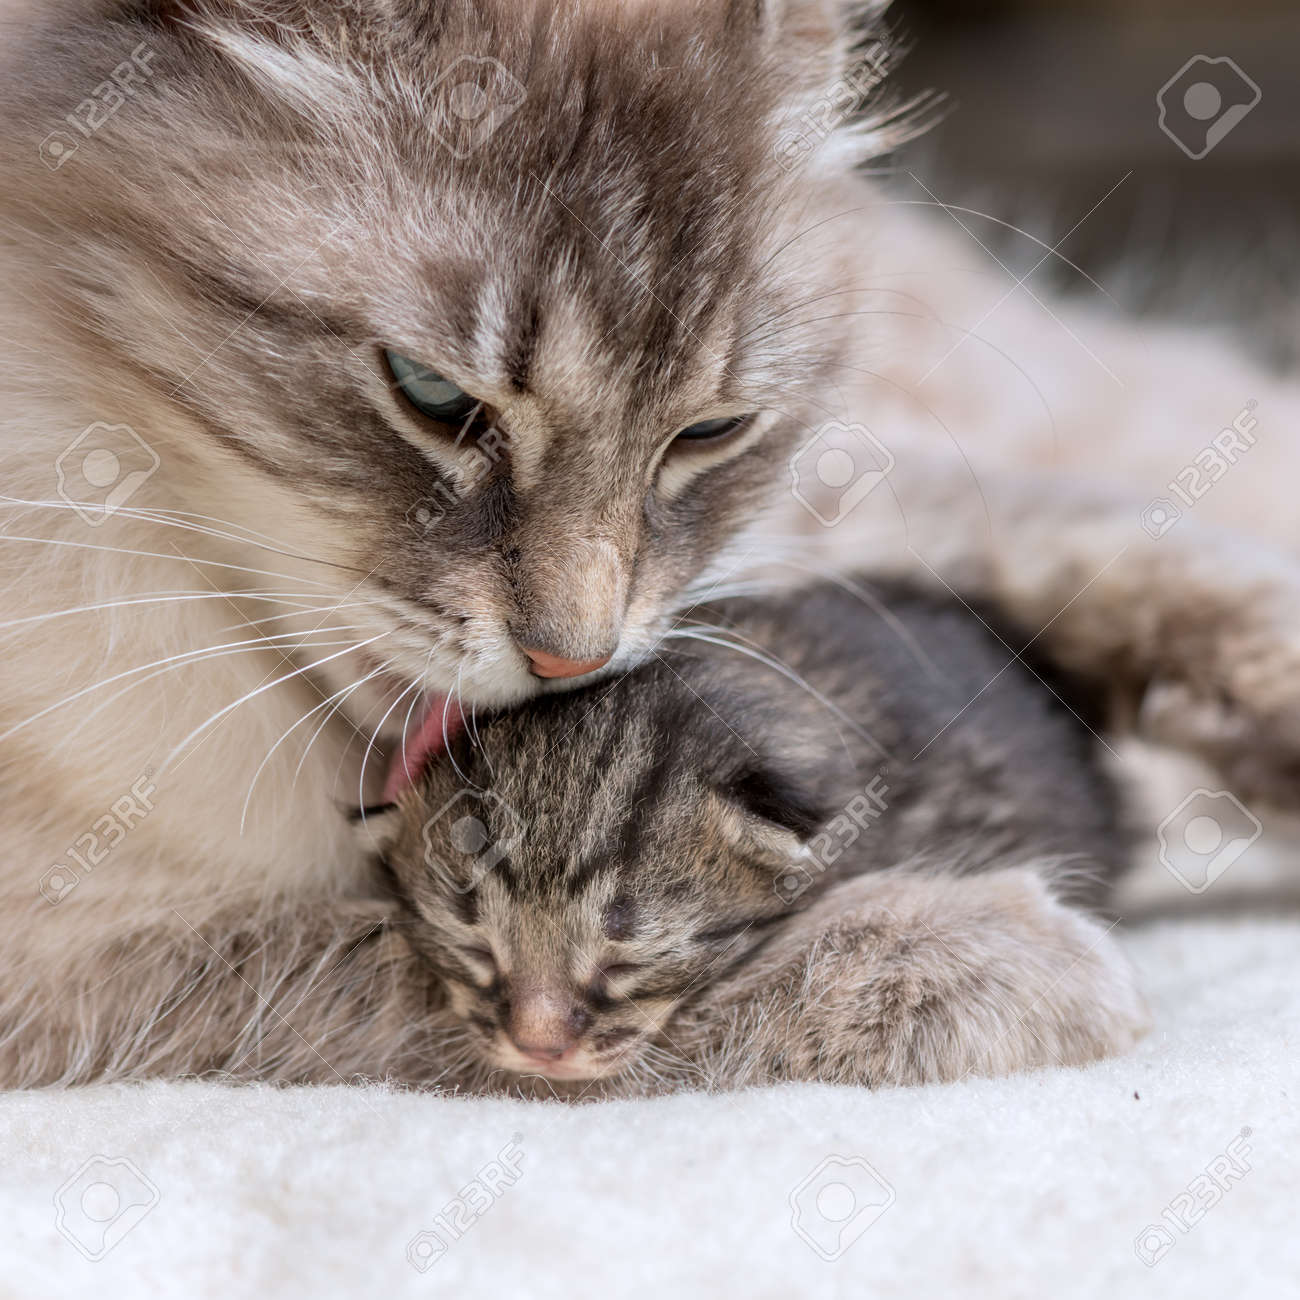 small kitten with mother close up - 46070316